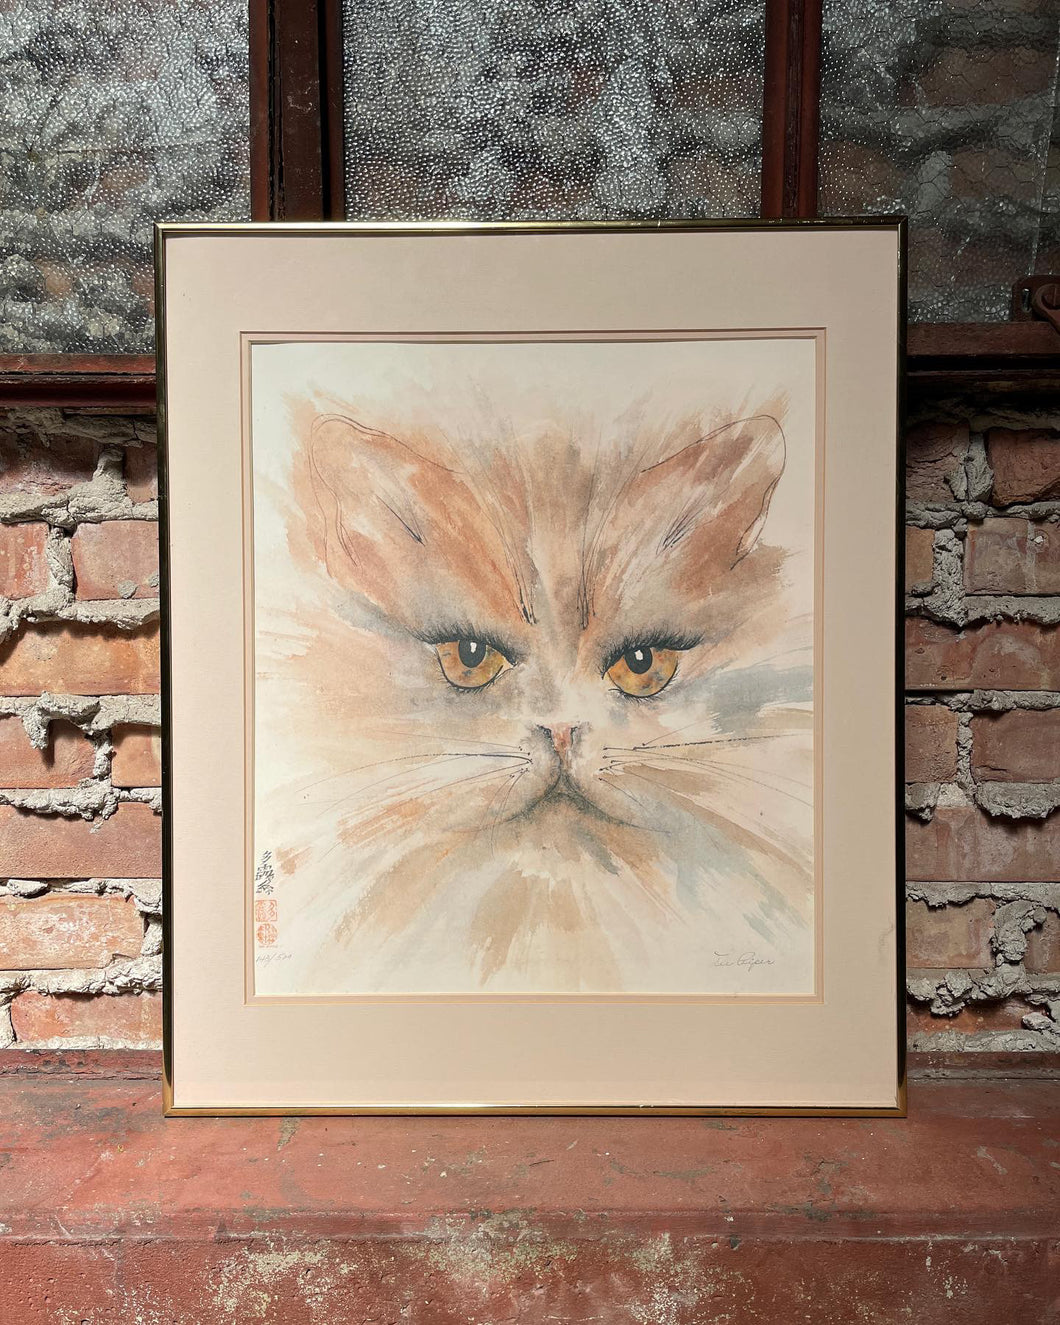 Framed Watercolor Print by Dee Piper